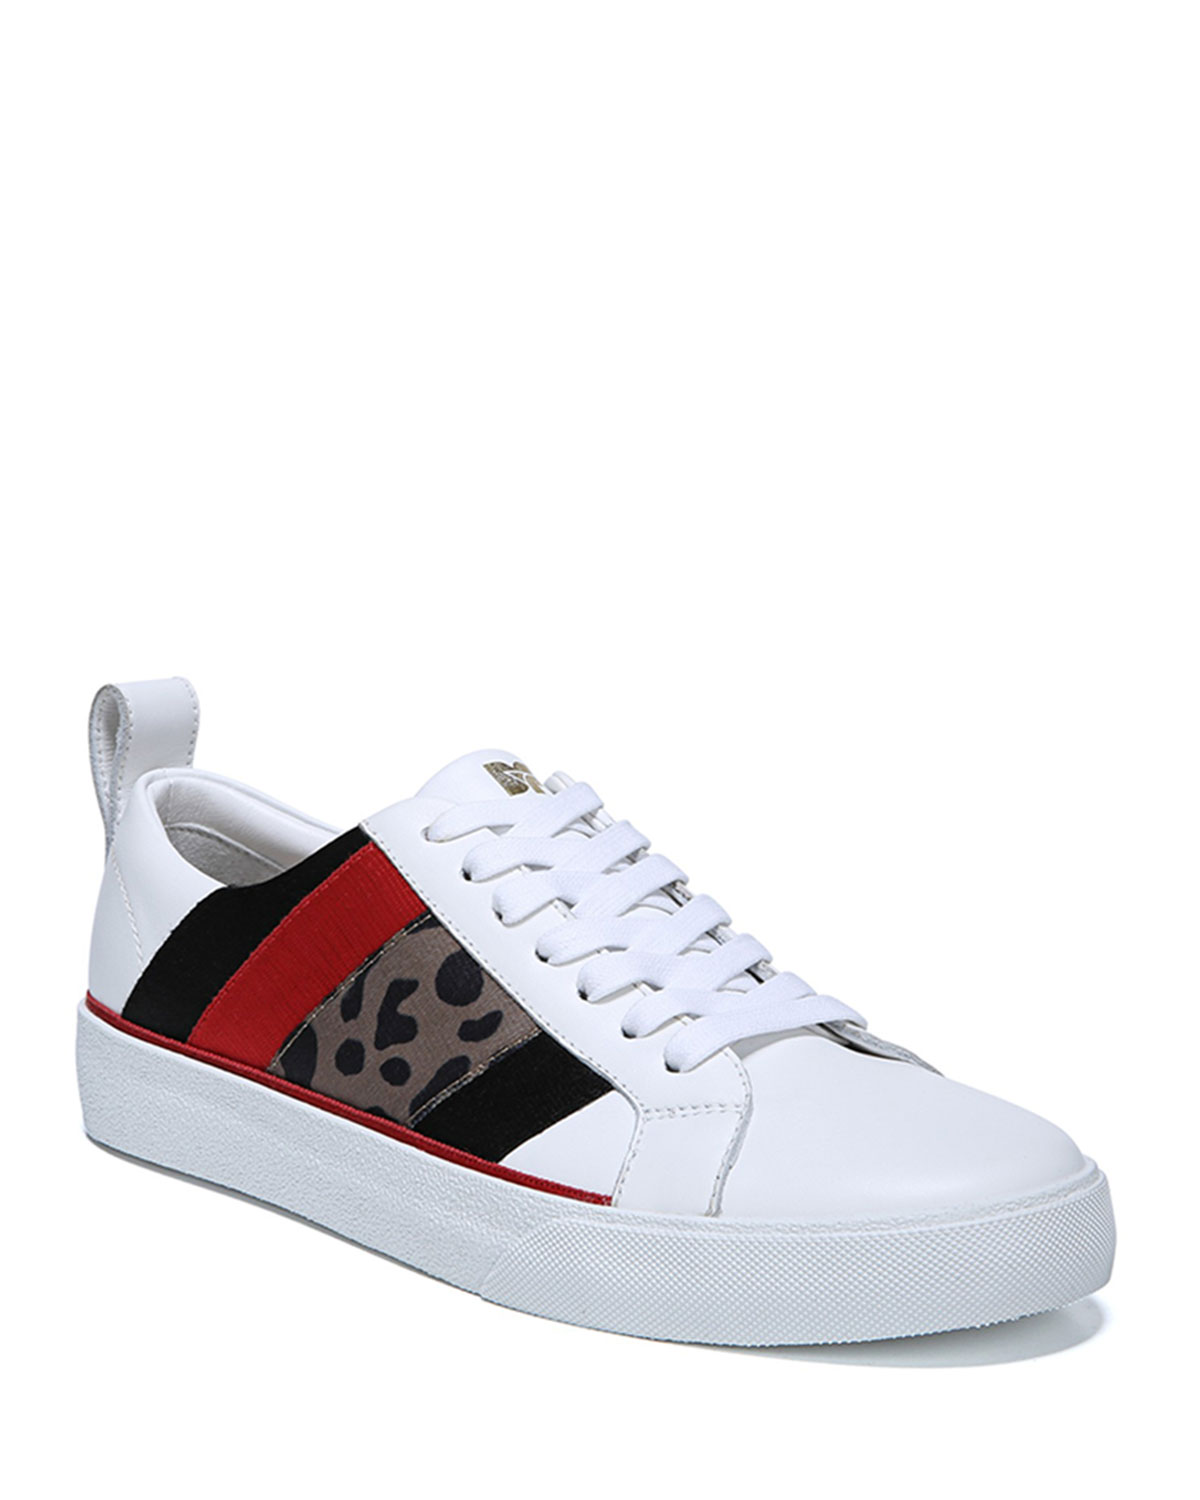 Tess Leather Sneakers With Mixed Panels in White